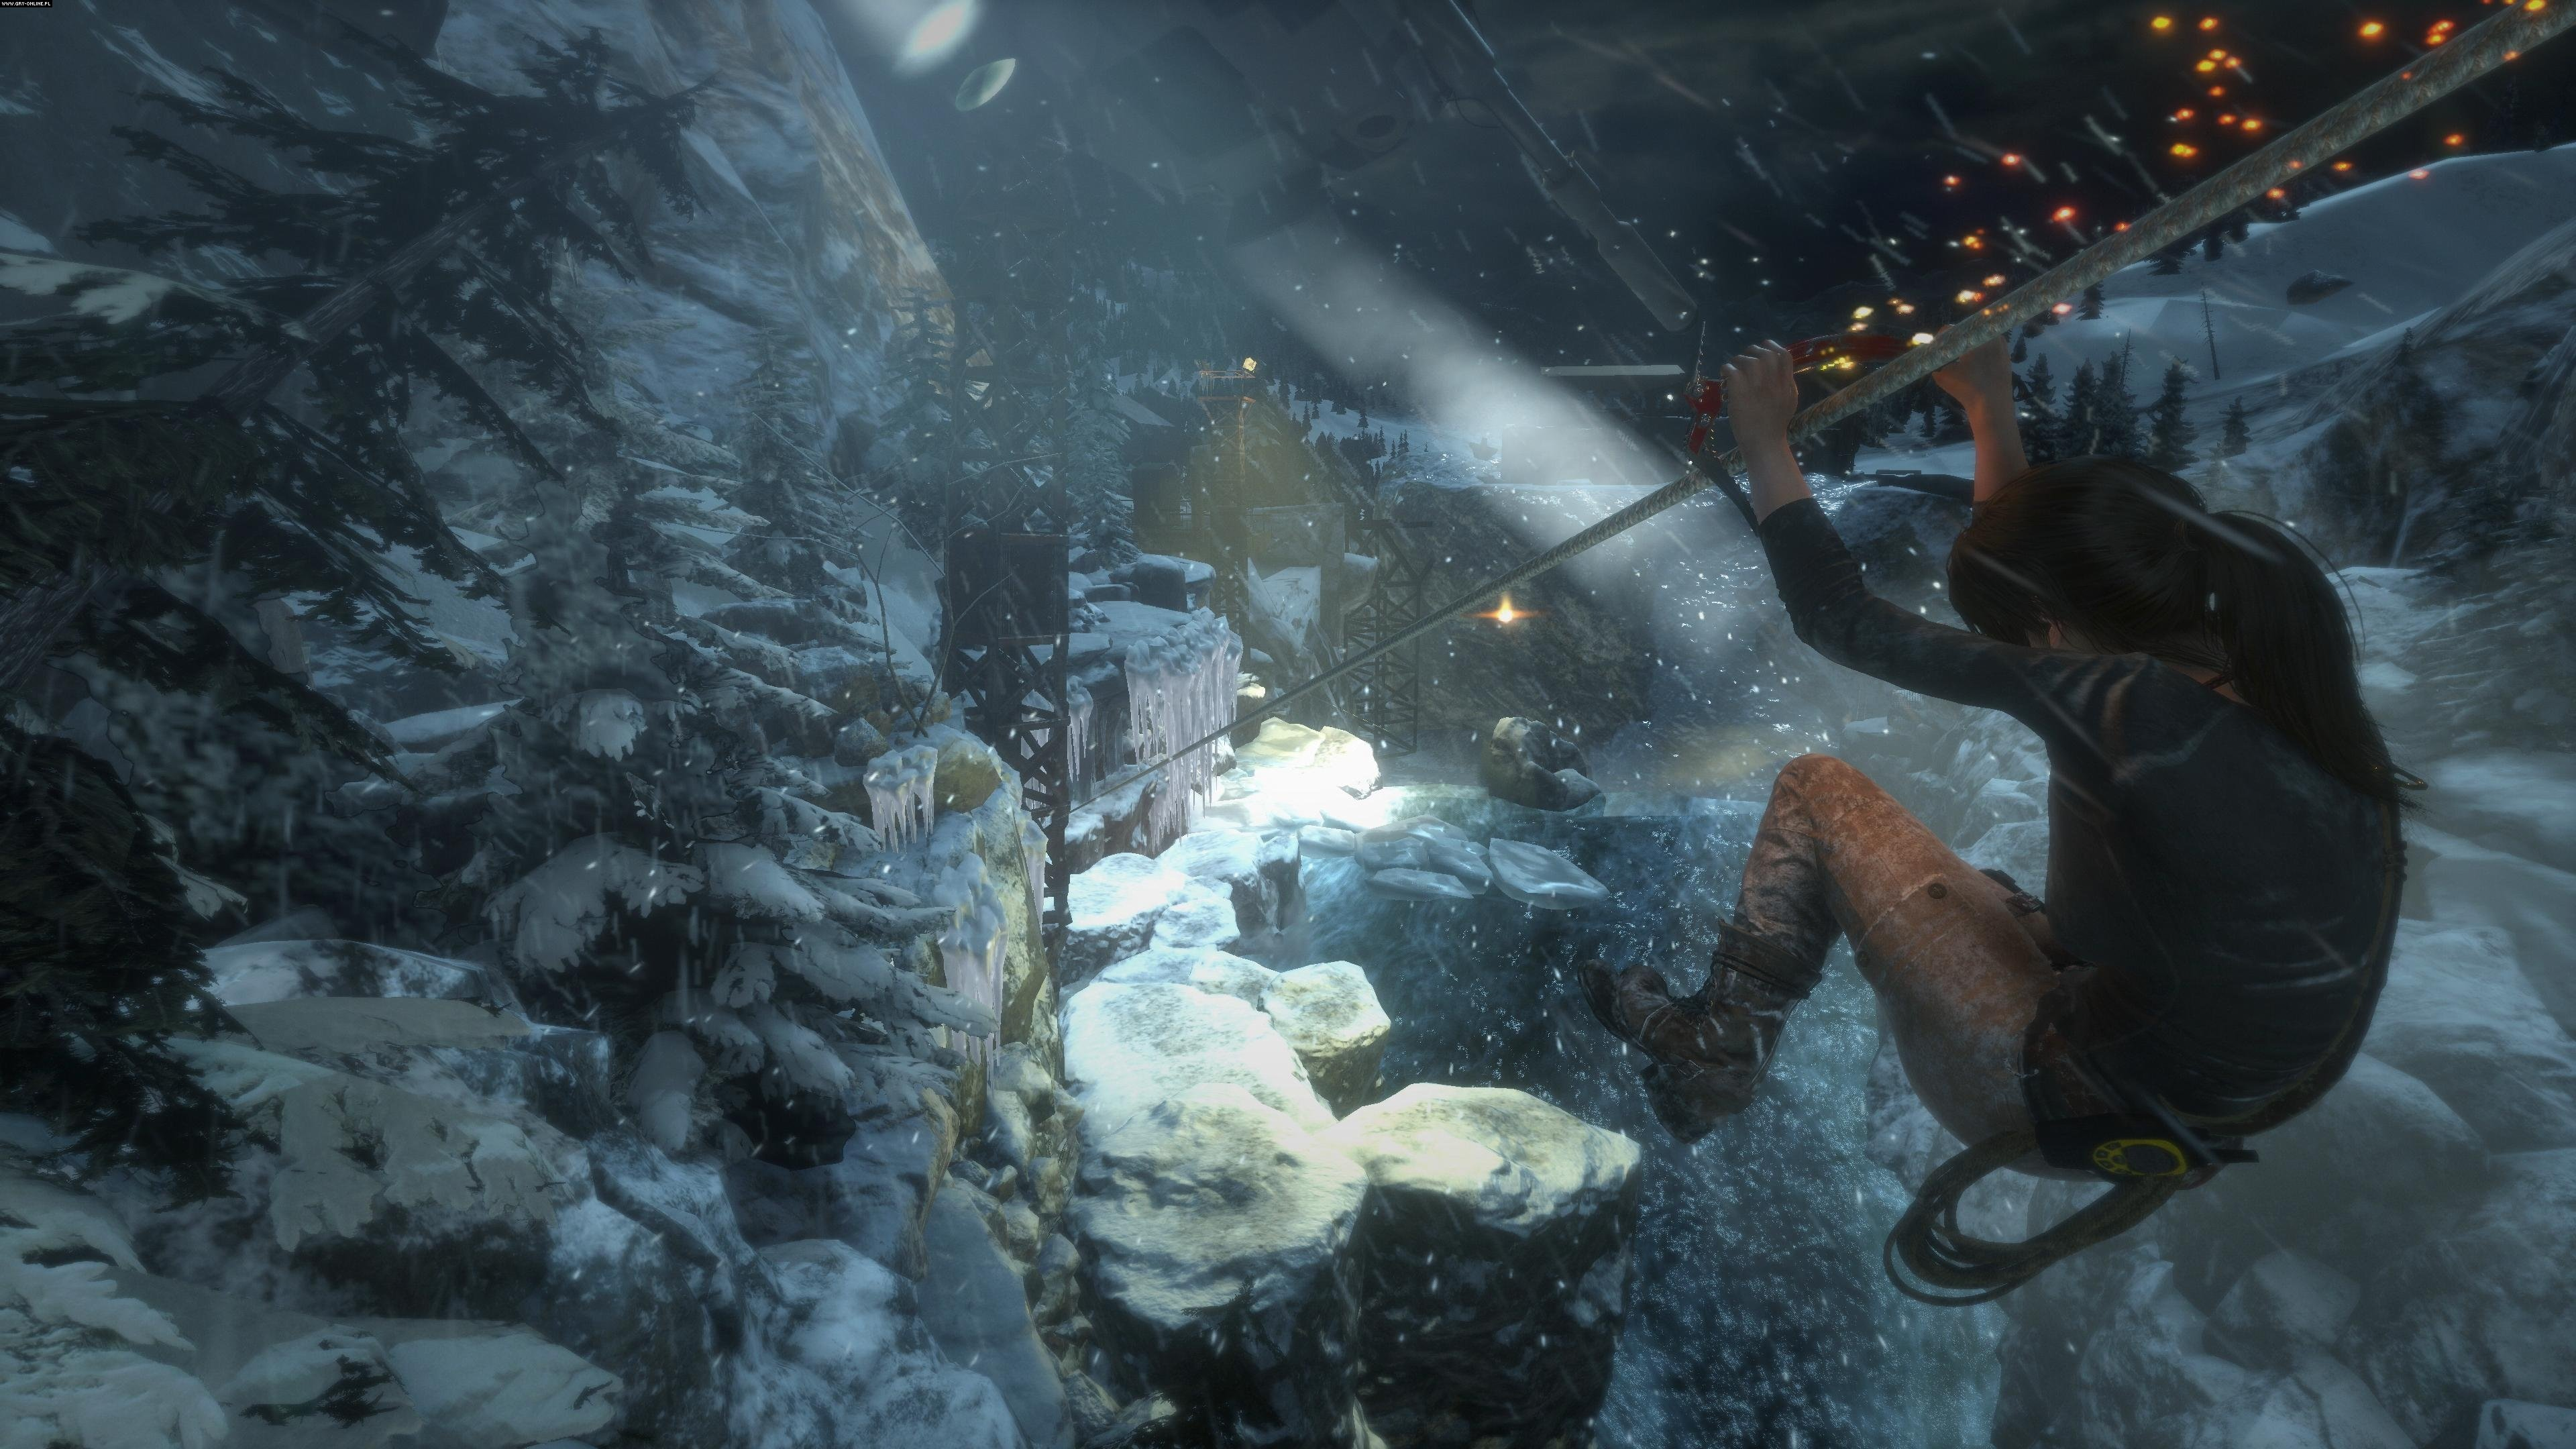 Rise of the Tomb Raider PC Games Image 1/126, Crystal Dynamics, Square-Enix / Eidos